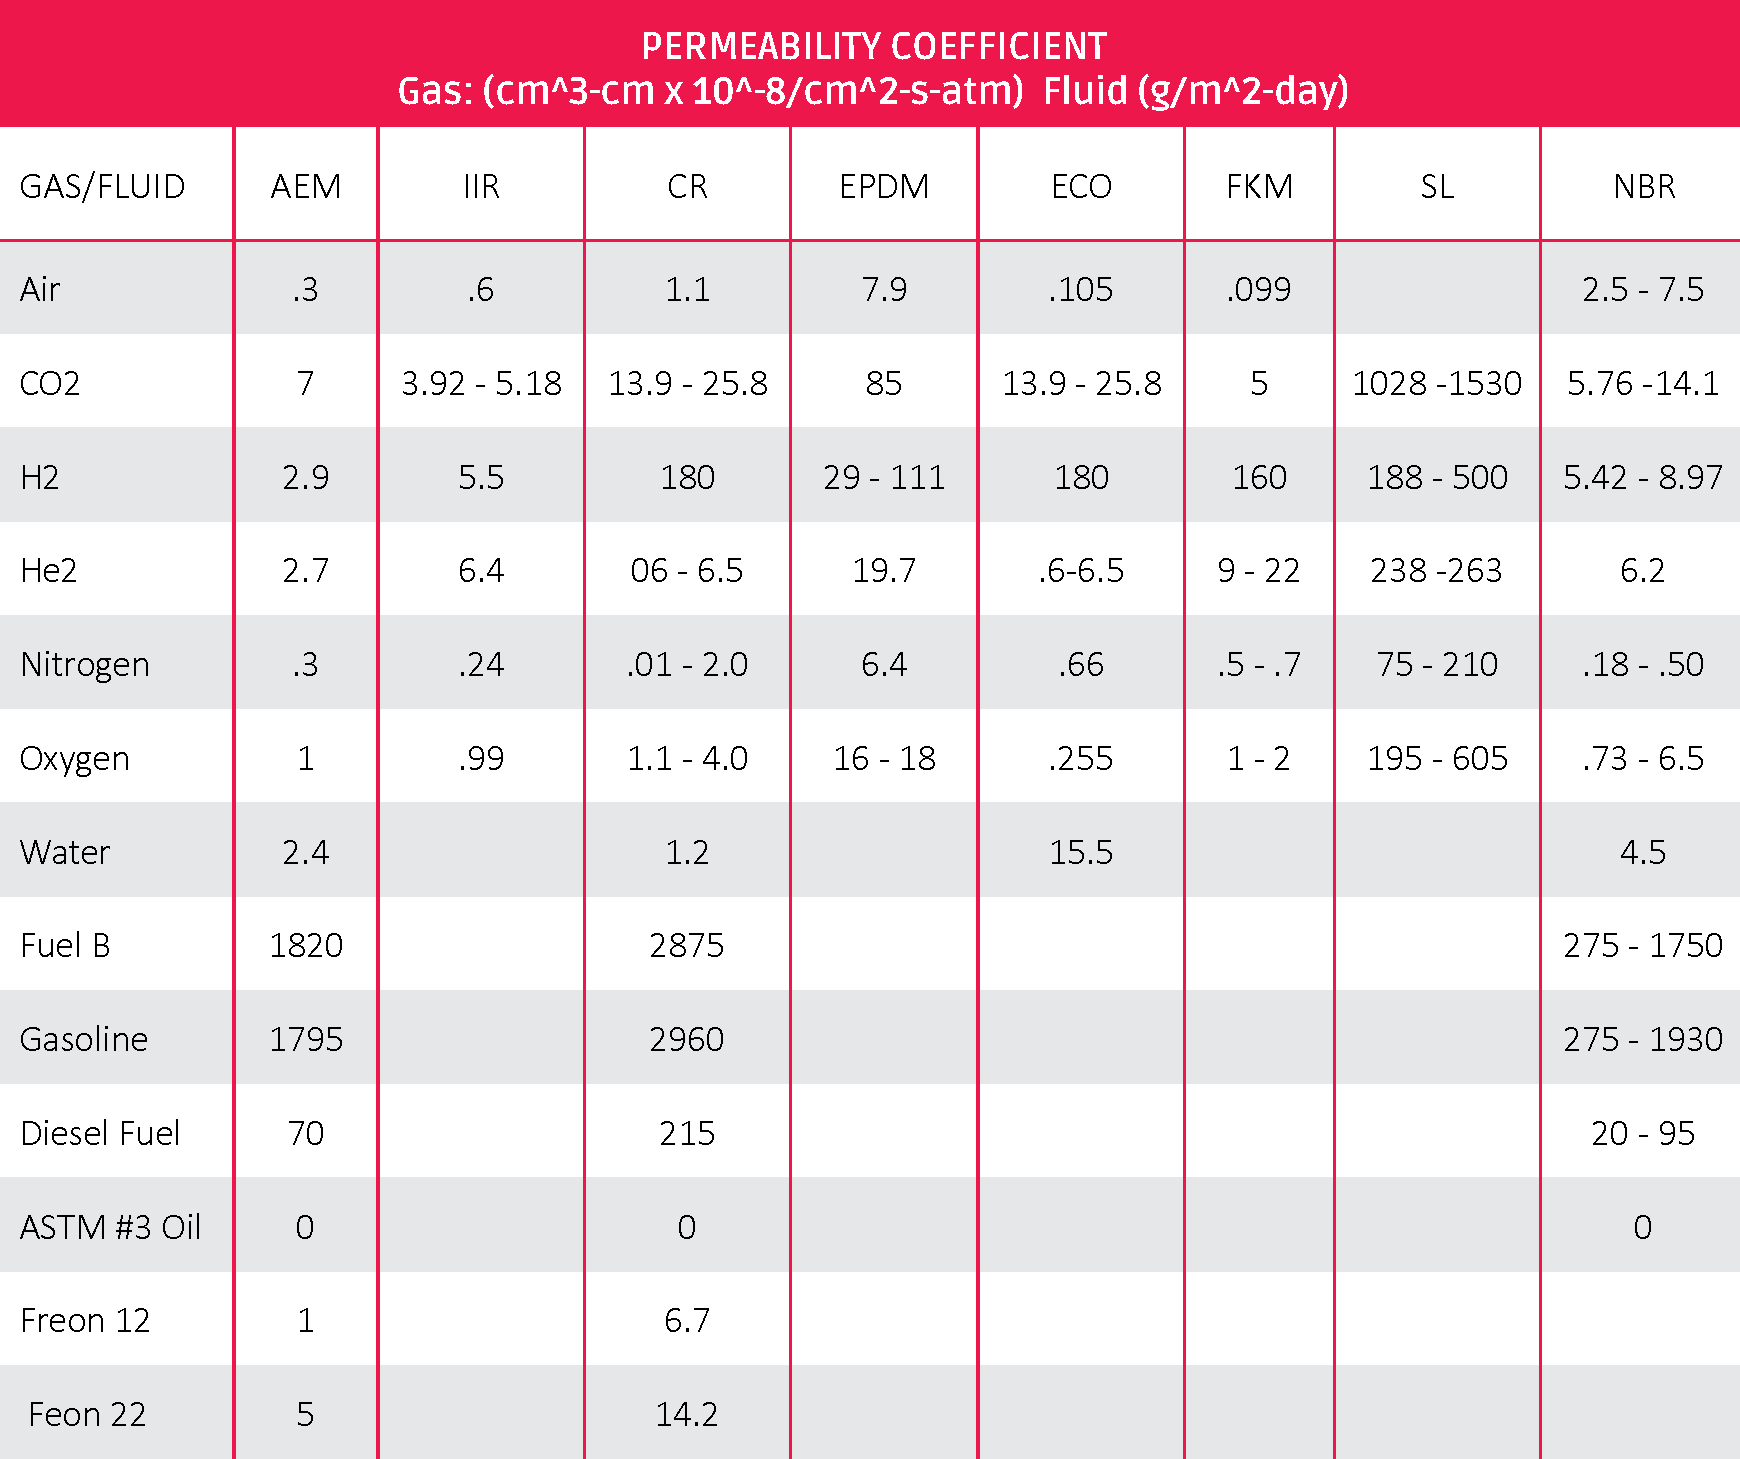 007556-12 December_PermeabilityOf Compounds_Table2